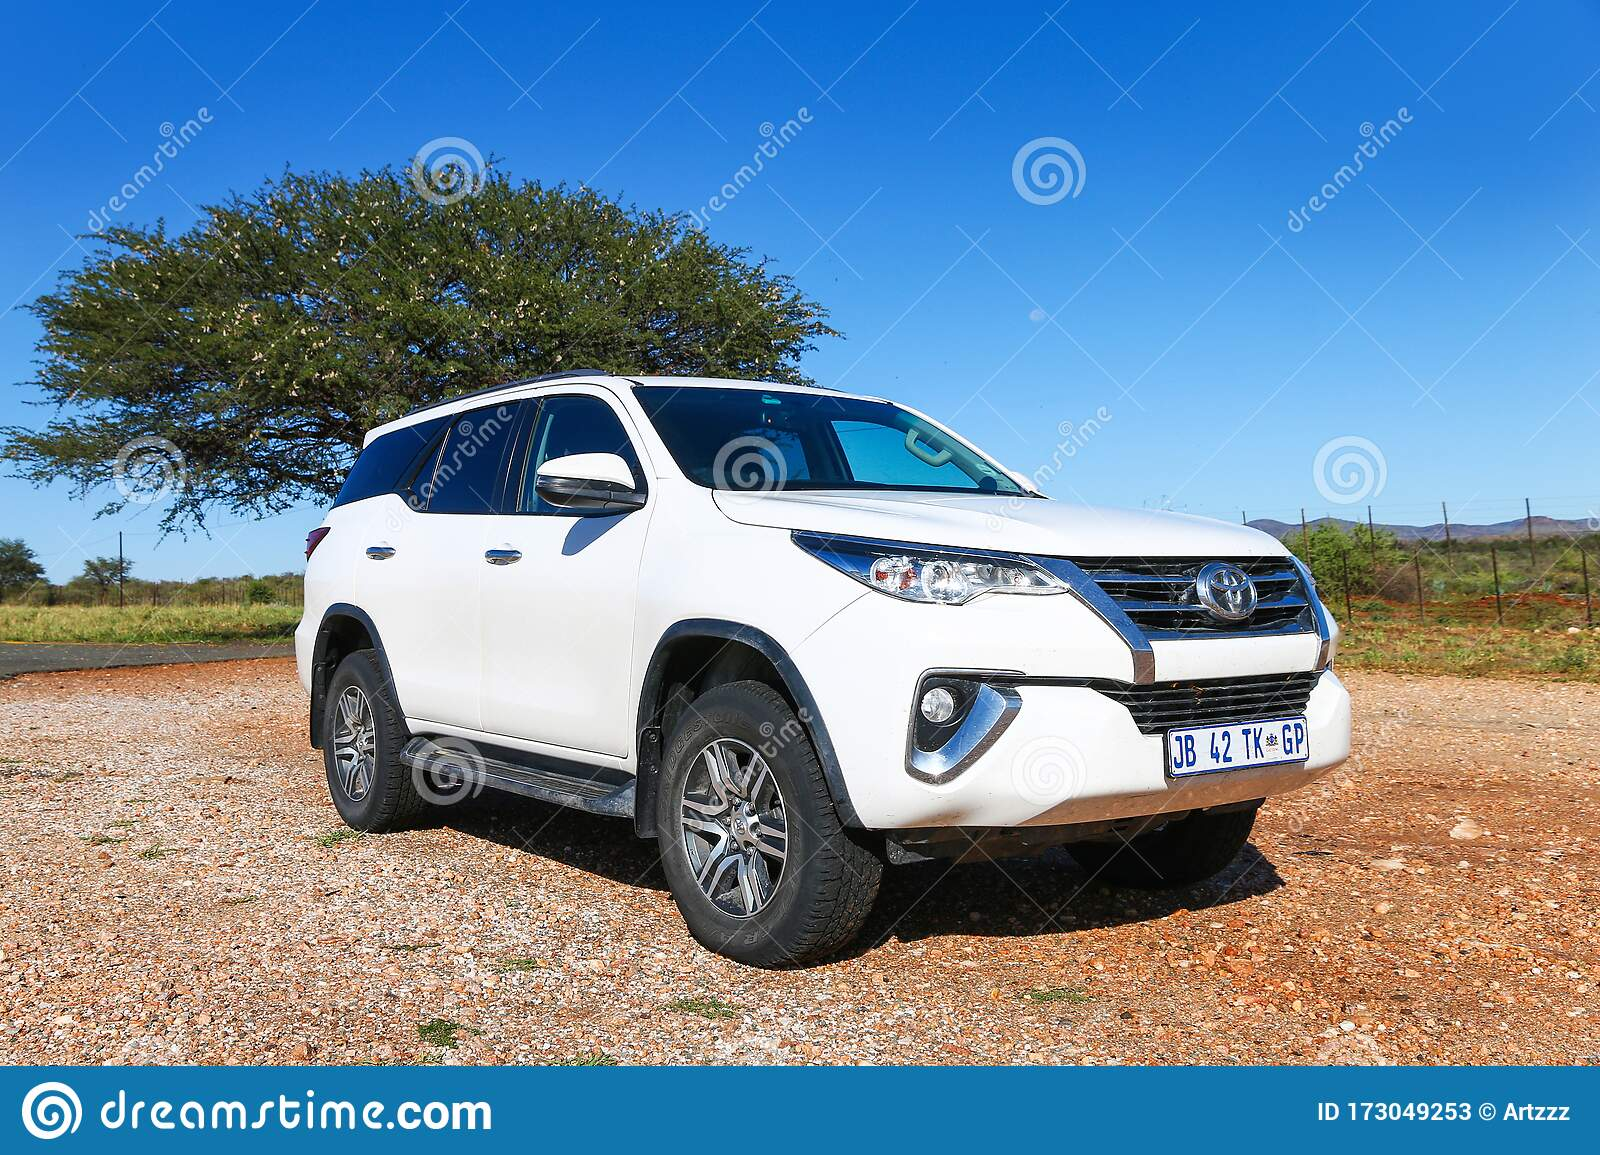 Toyota Fortuner Editorial Stock Photo Image Of Large 173049253